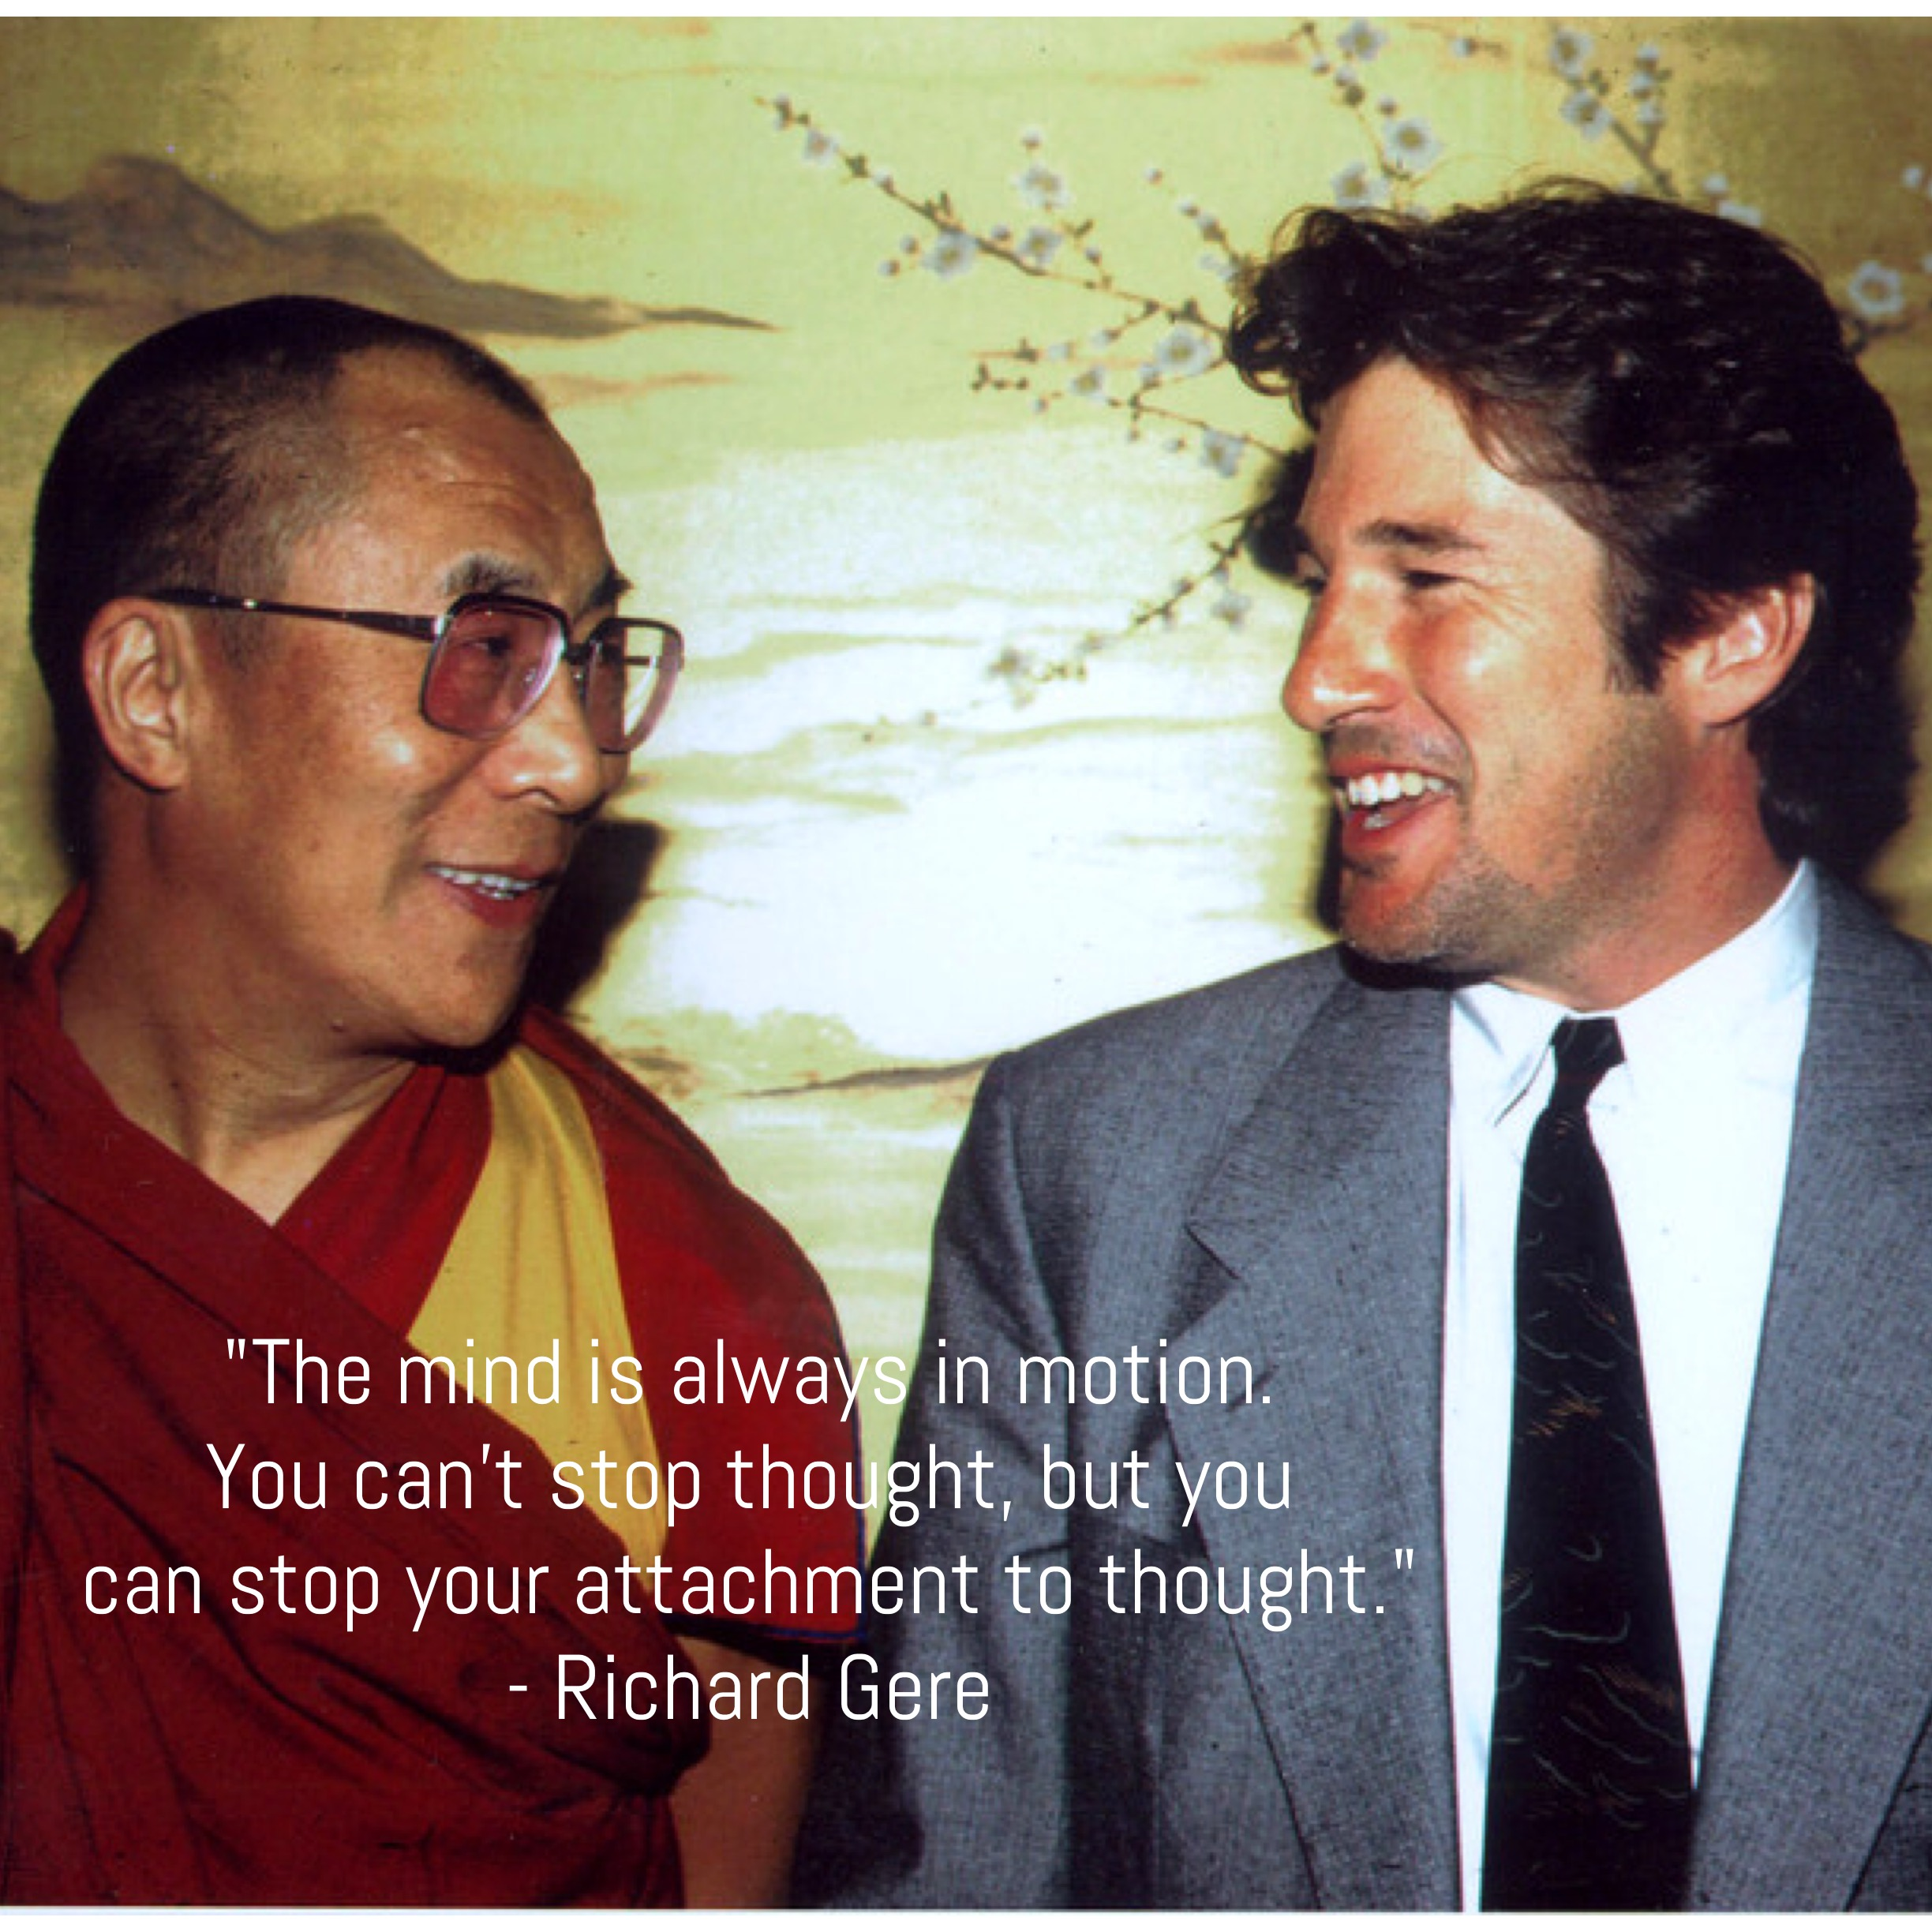 Richard Gere Quote